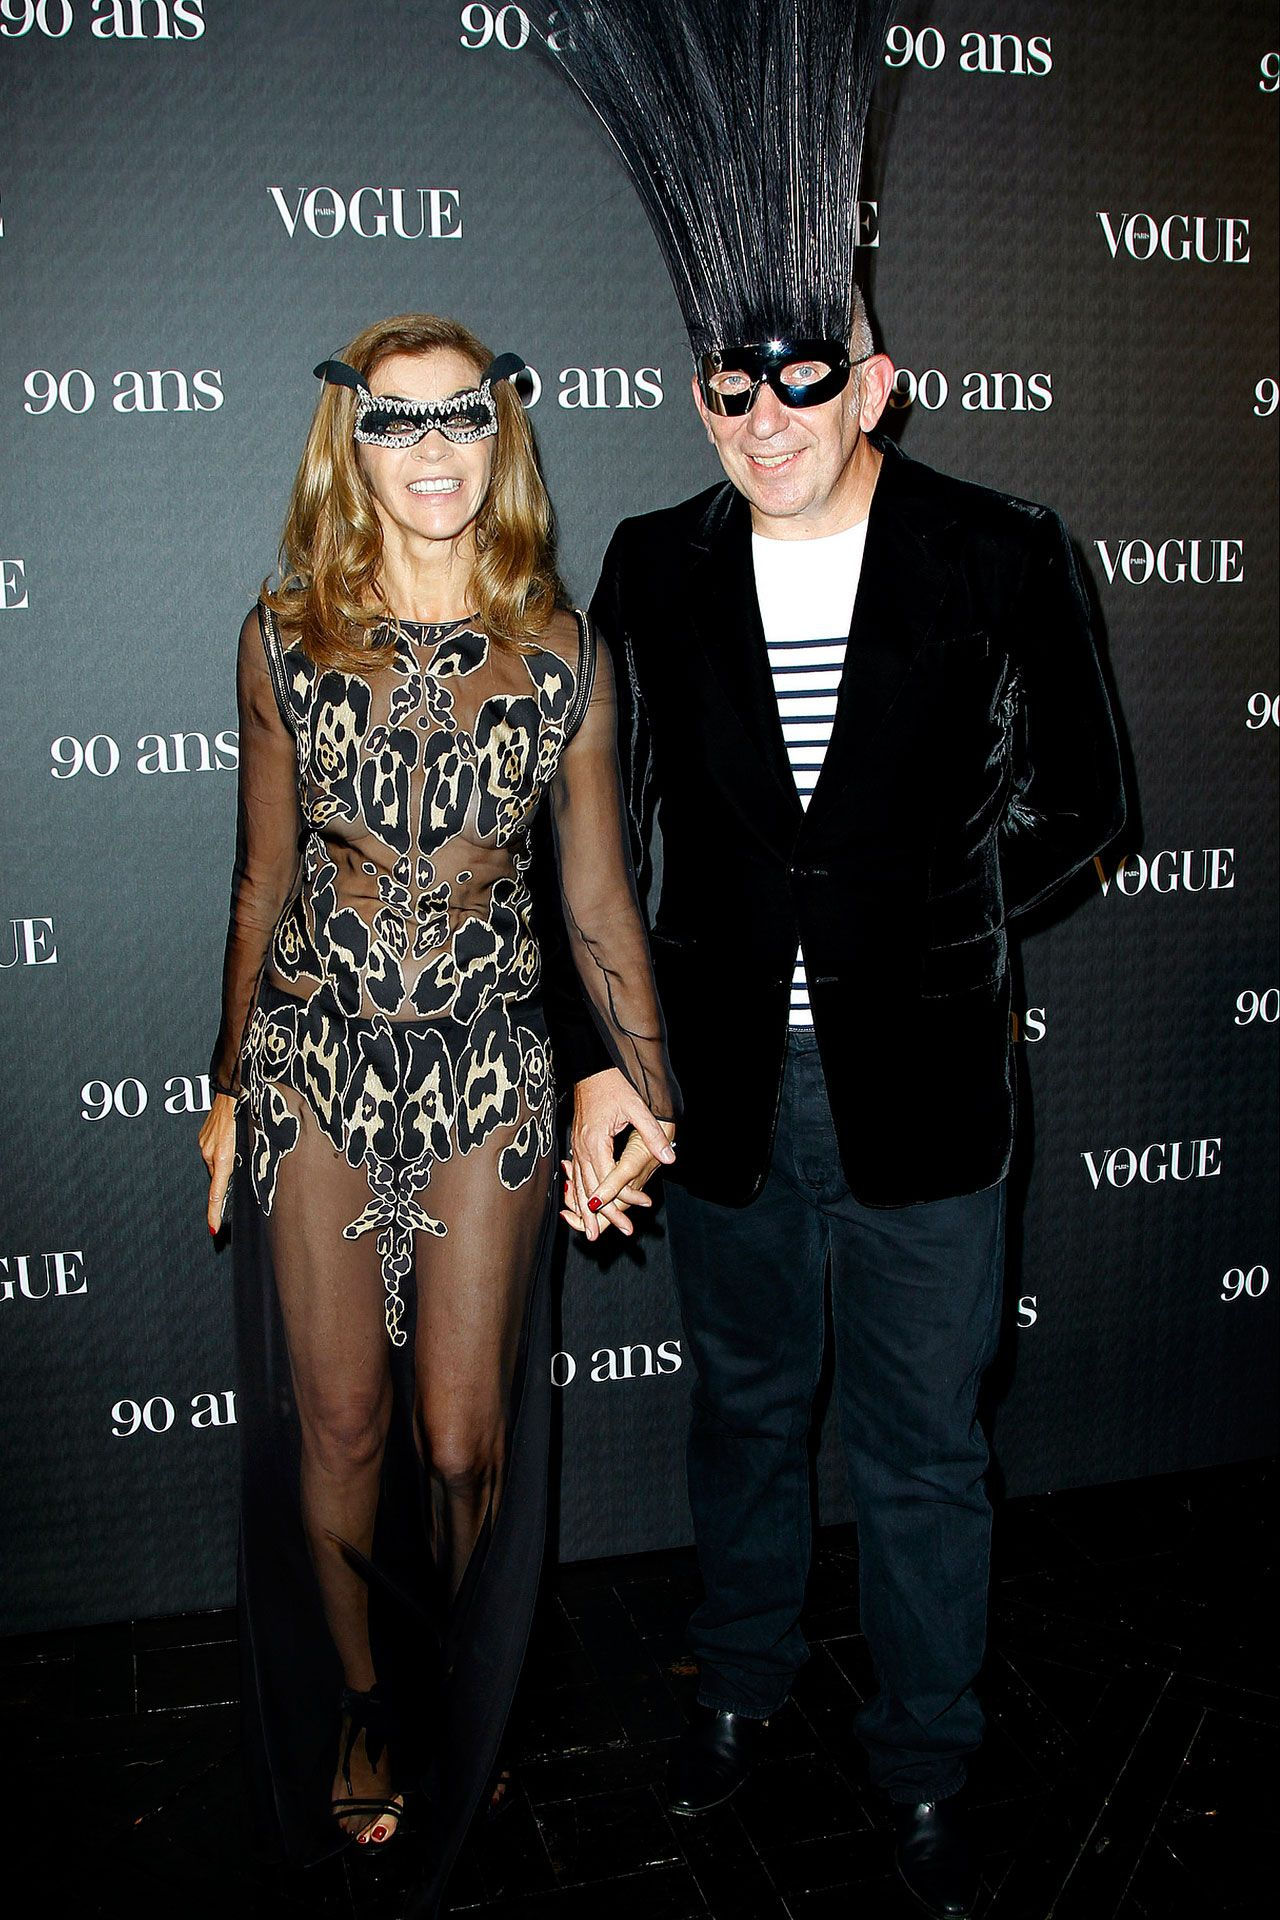 Jean paul gaultier valentineus masked ball dress code pinterest